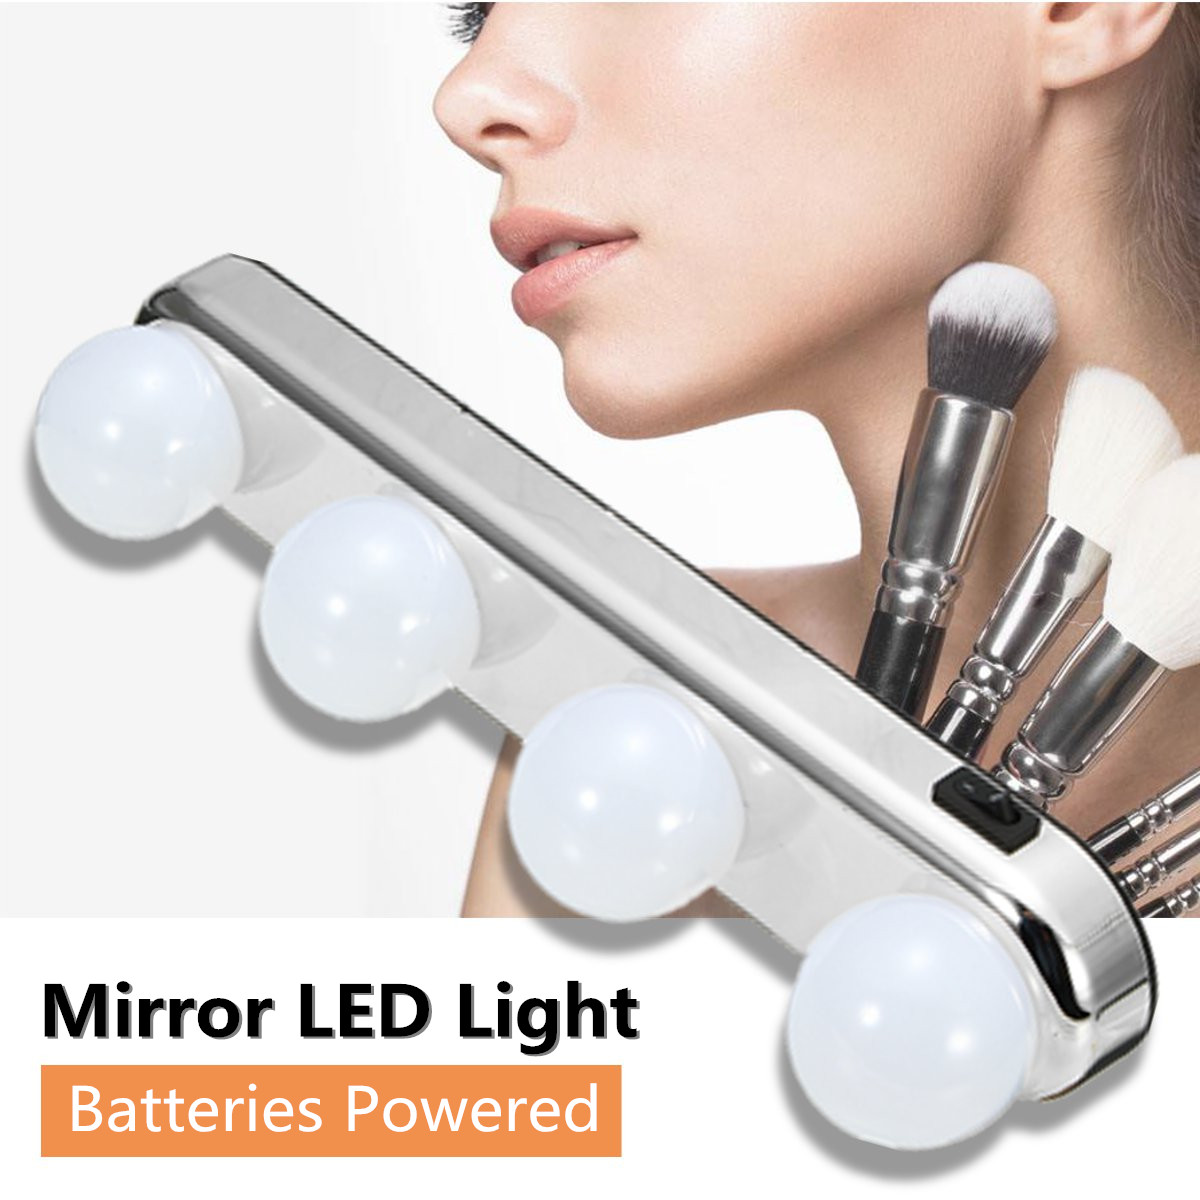 4 Bulbs LED Makeup Mirror Light Portable Suction Cups Batteries Powered Makeup Lamp